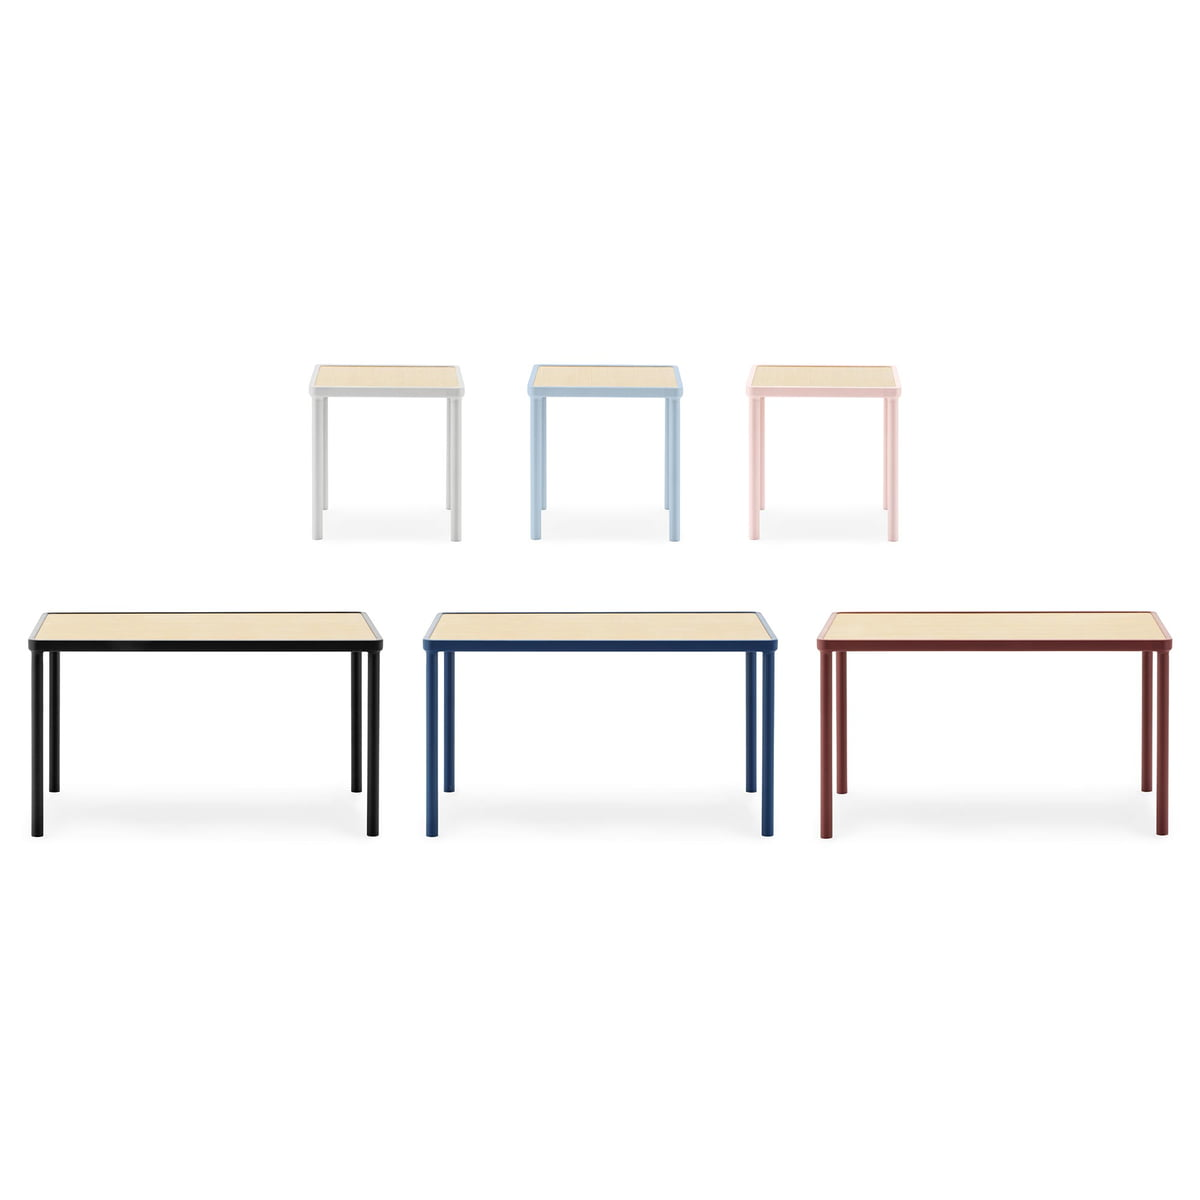 Table basse Case petit format 40 x 40 cm de Normann Copenhagen -> Table Basse Haute Et Petit Format